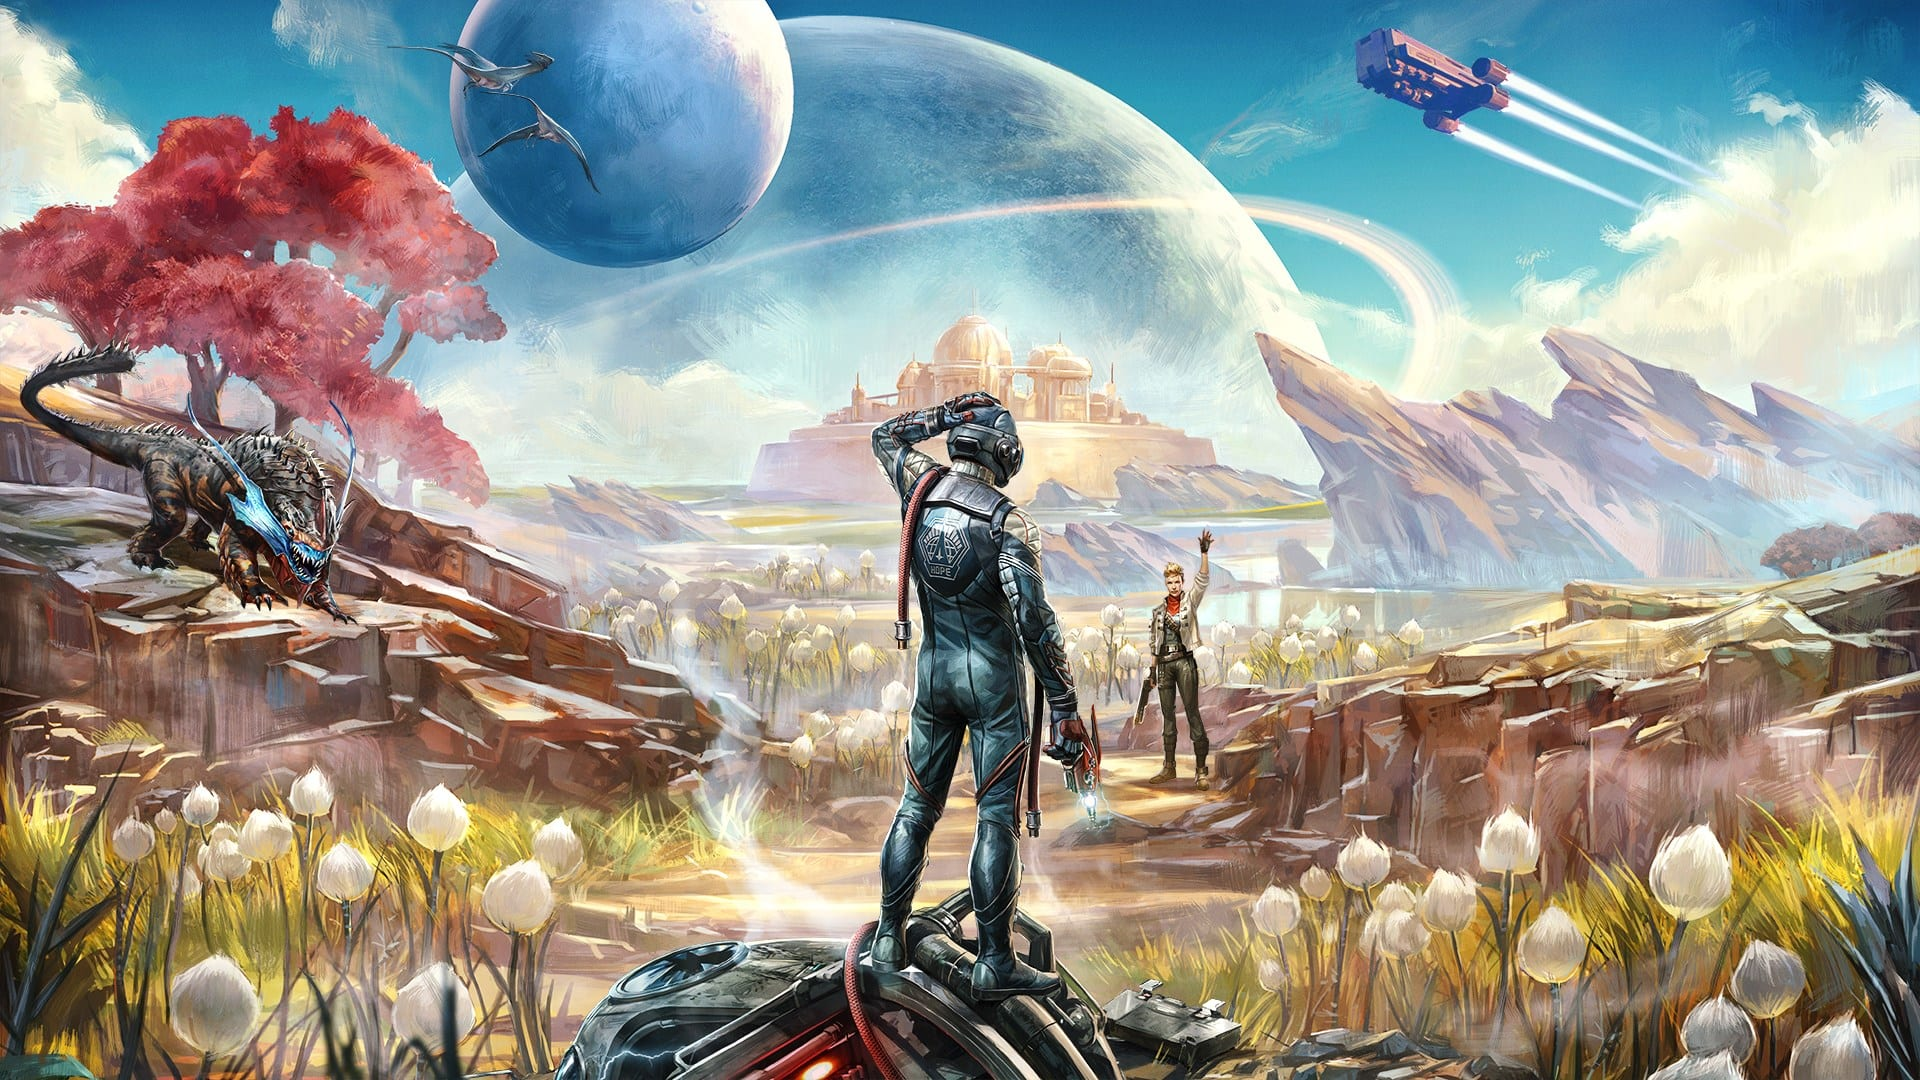 outer worlds, chimerists last experiment, quest guide